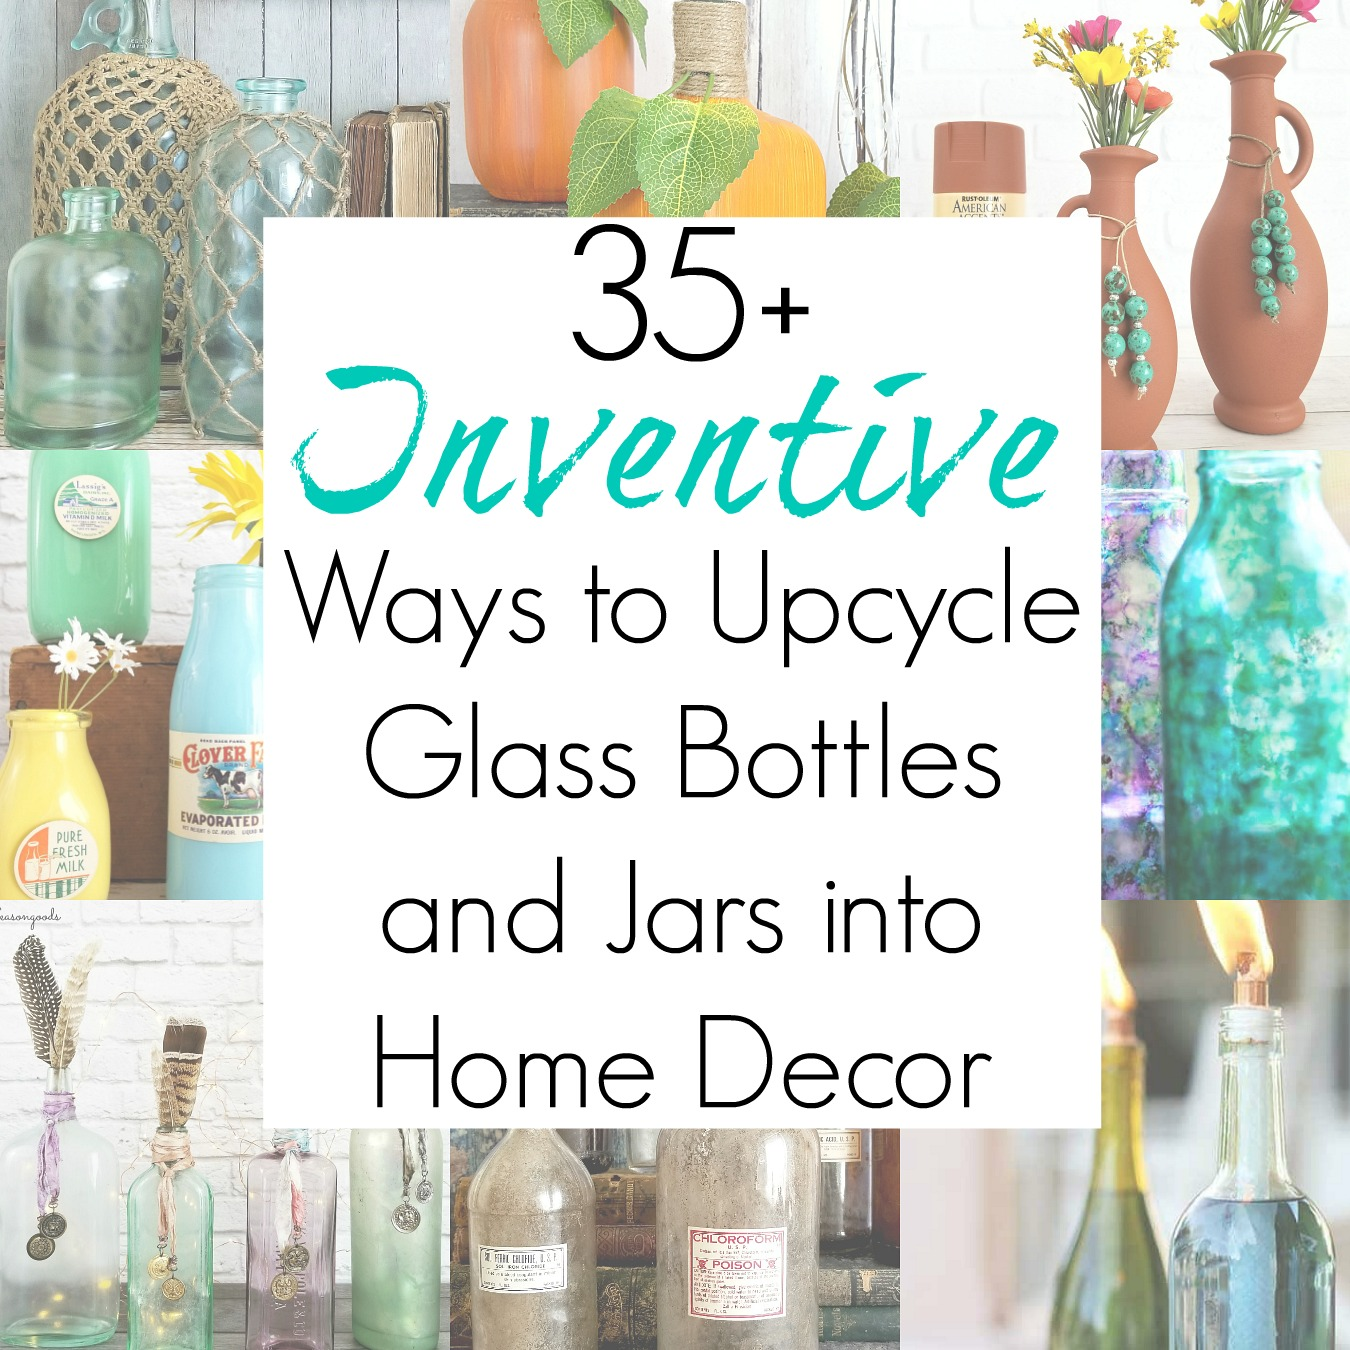 Glass Bottle Crafts and Upcycling Ideas for Empty Wine Bottles into Decorative Glass Jars